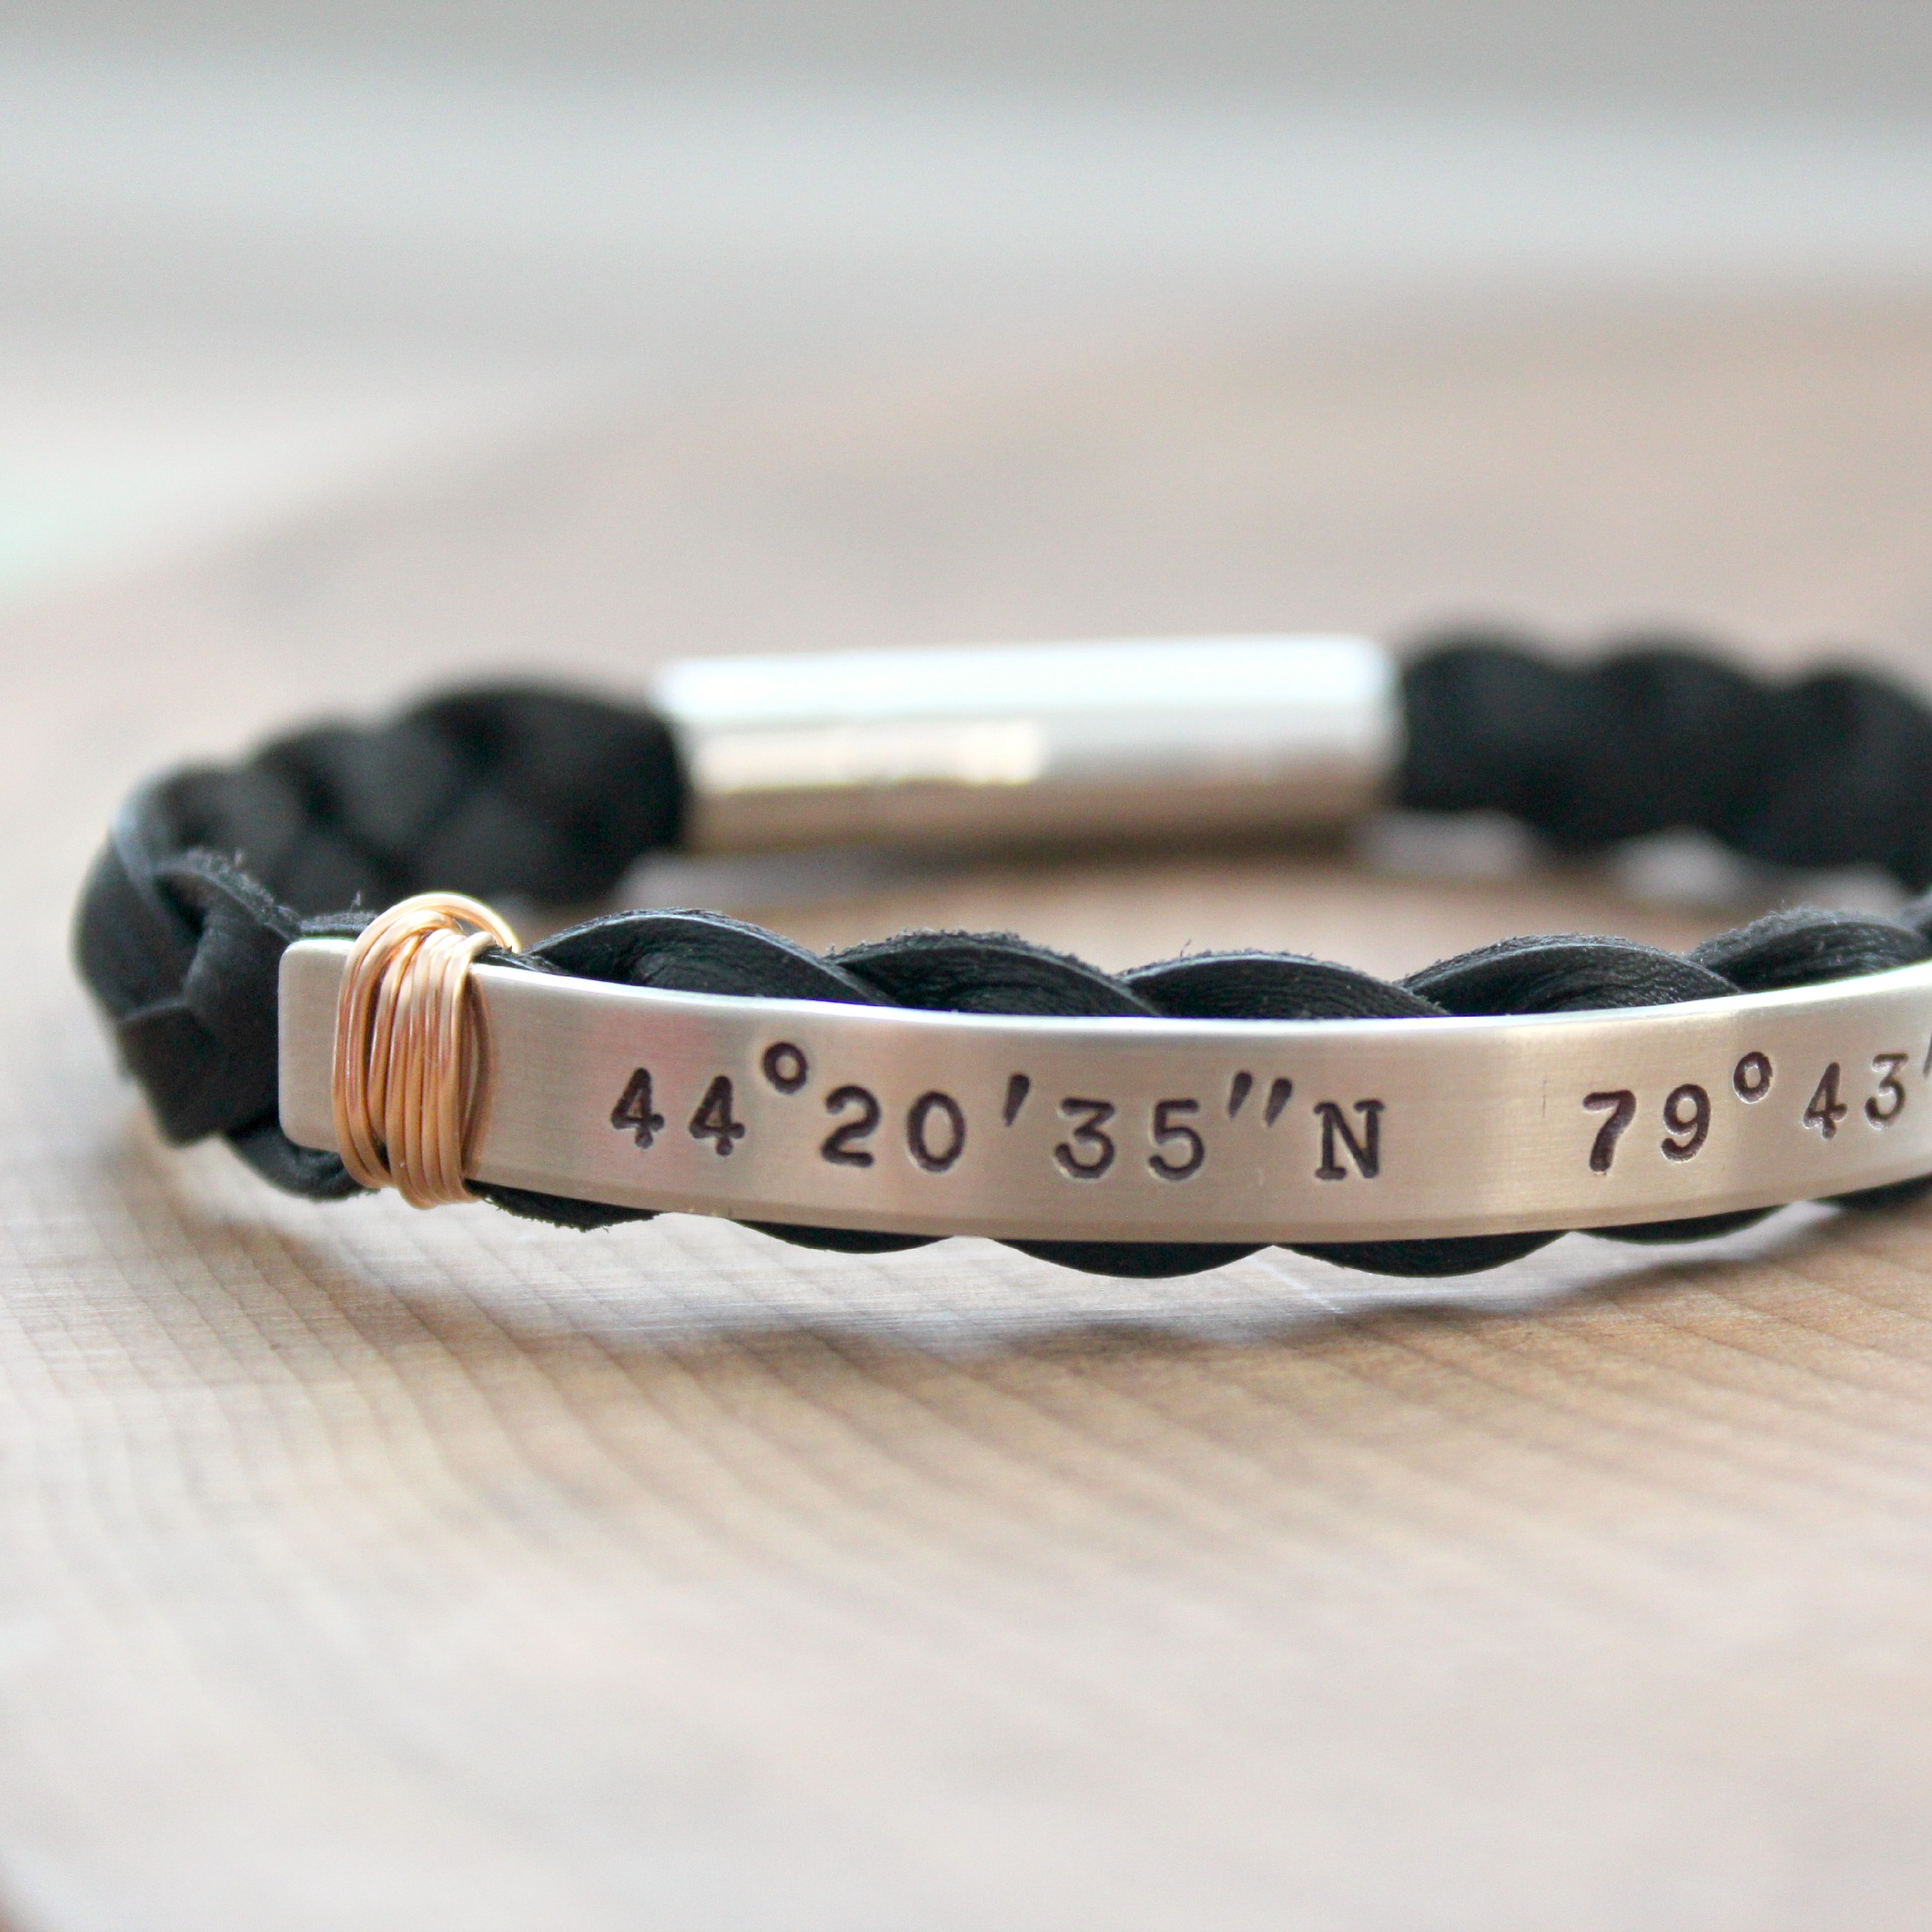 mens latitude father listing s bracelet for gift gps personalized custom leather longitude nqvq coordinates him fullxfull il day